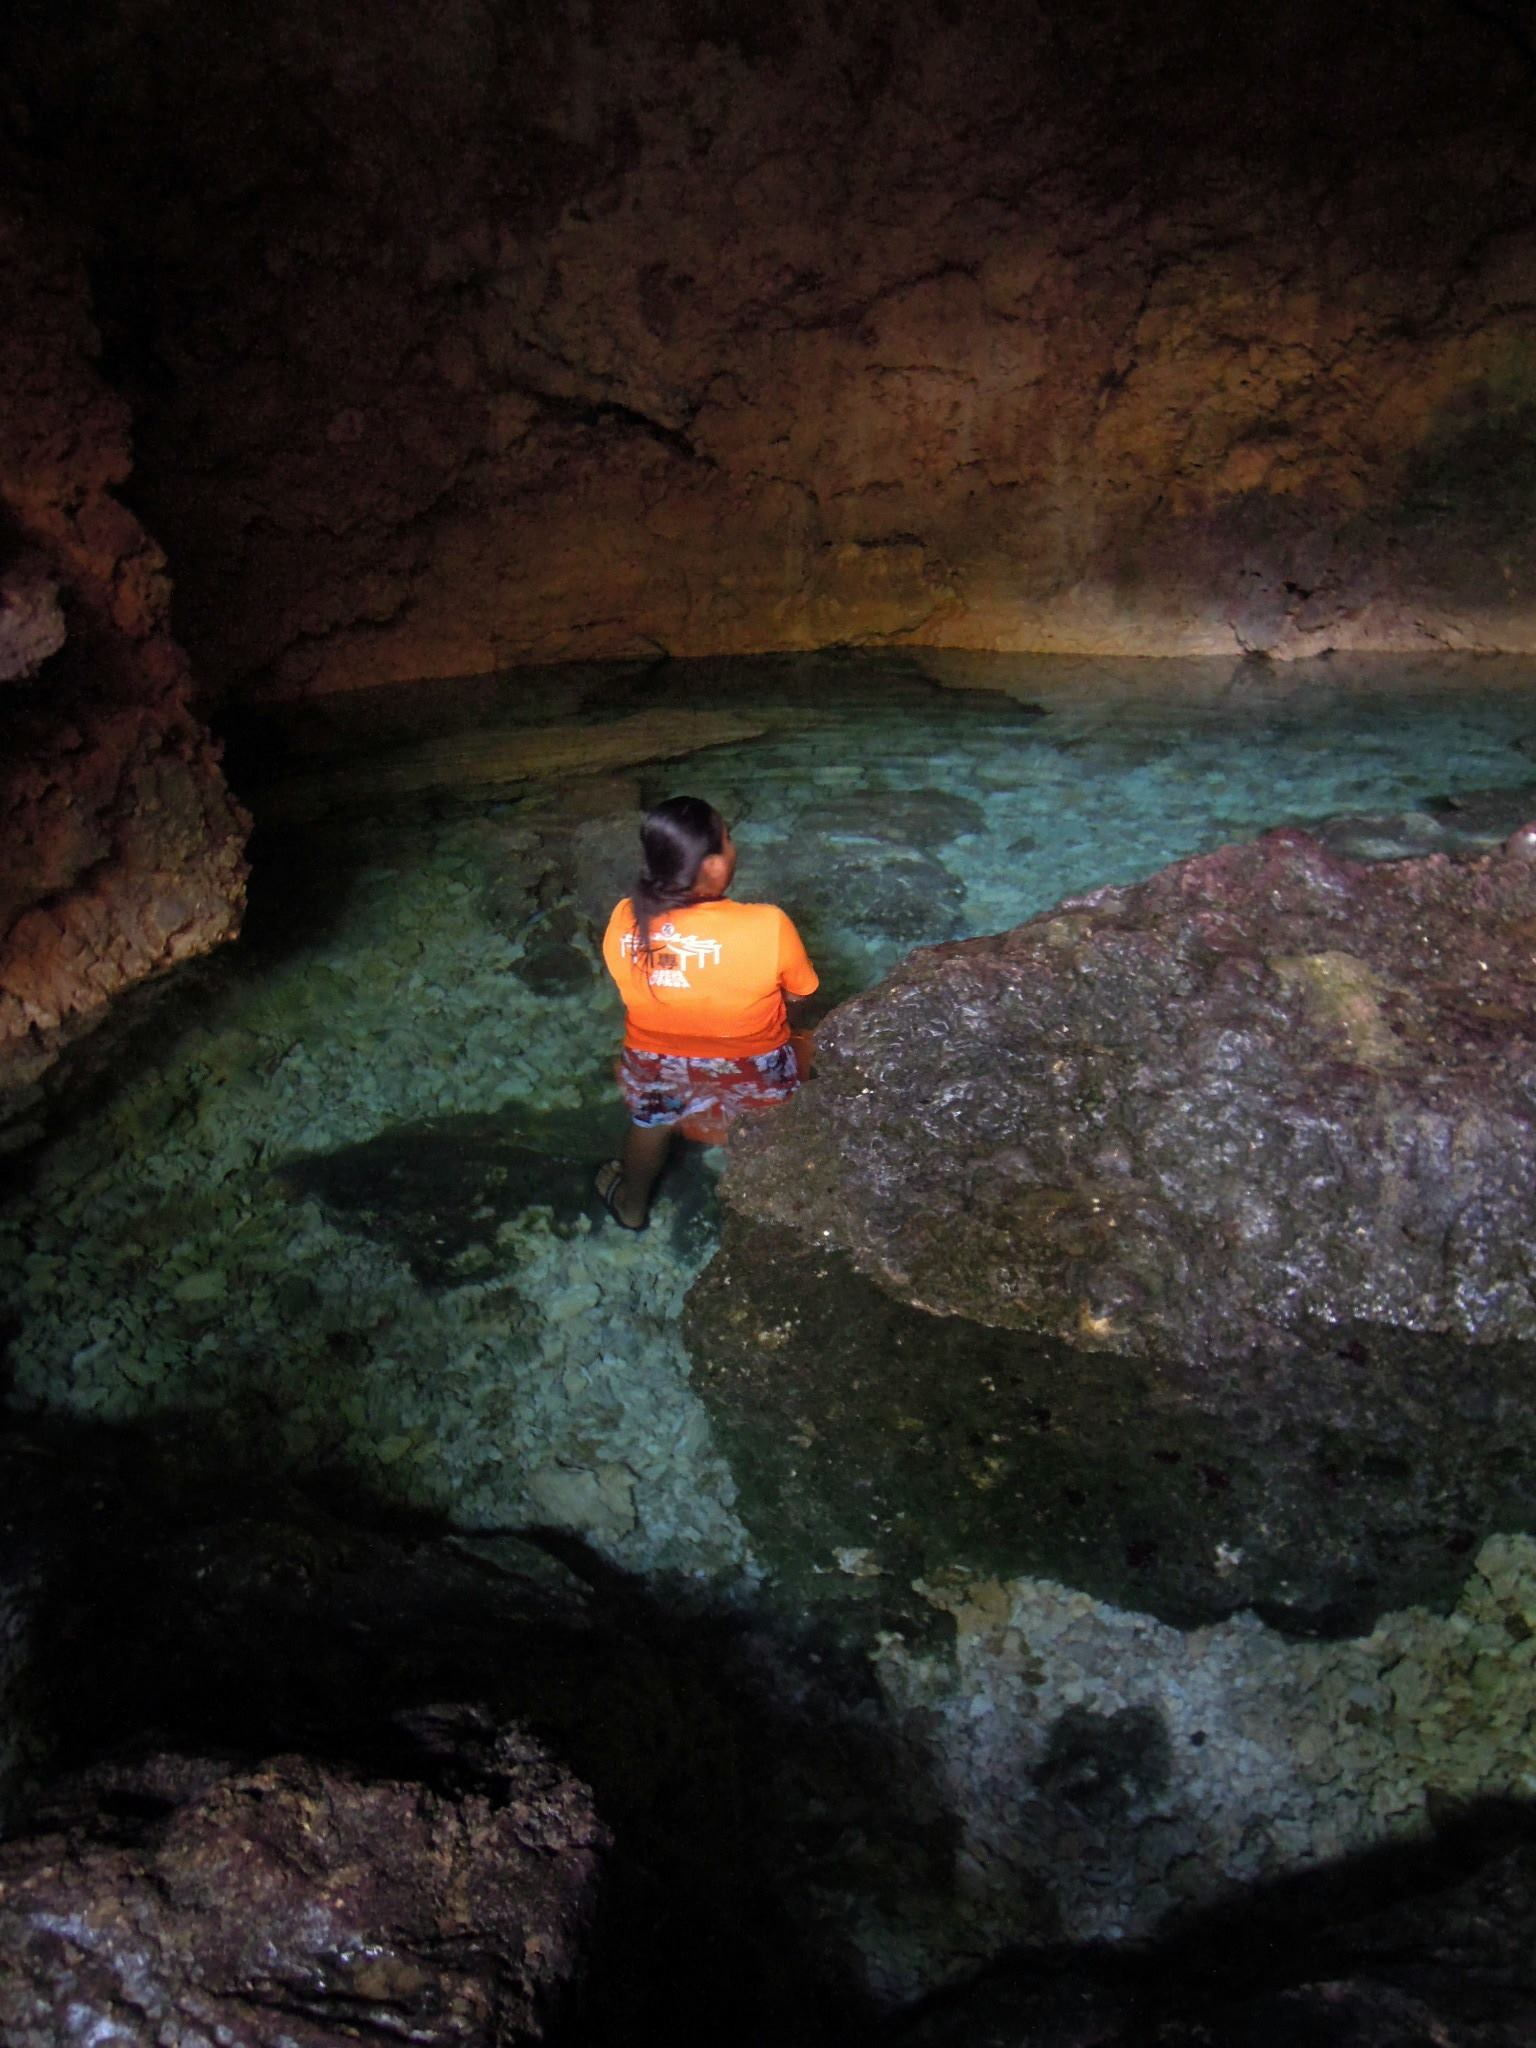 CAVE POOL. Combento Cave has clear shallow waters you can easily wade through. Photo by Ros Flores